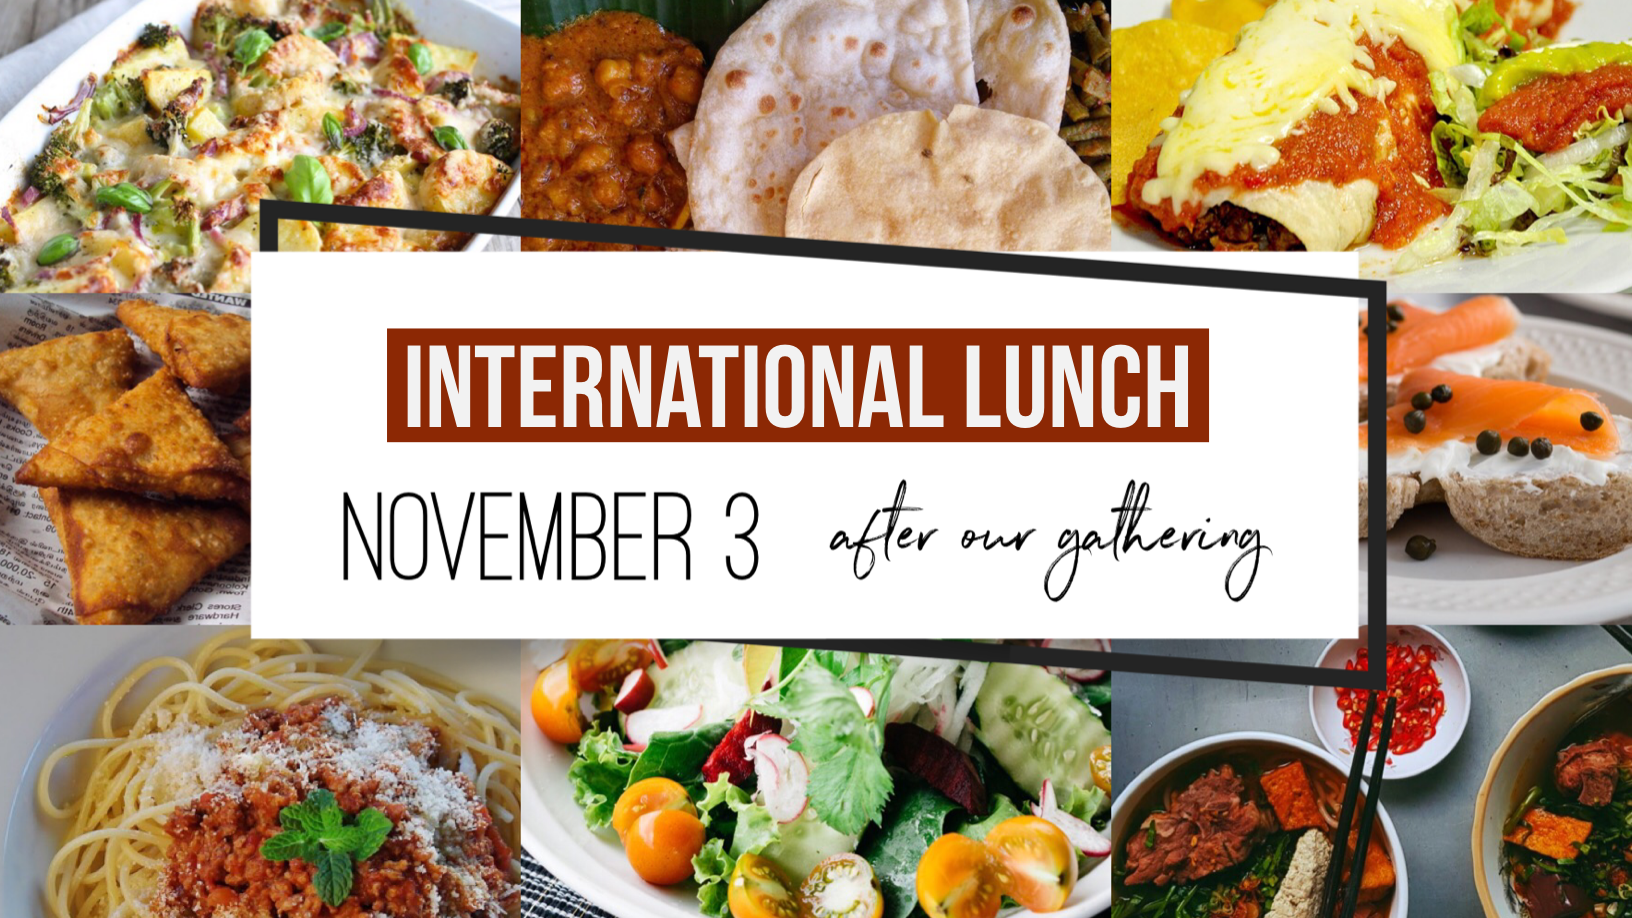 InternationalLunch Fall 2019 image